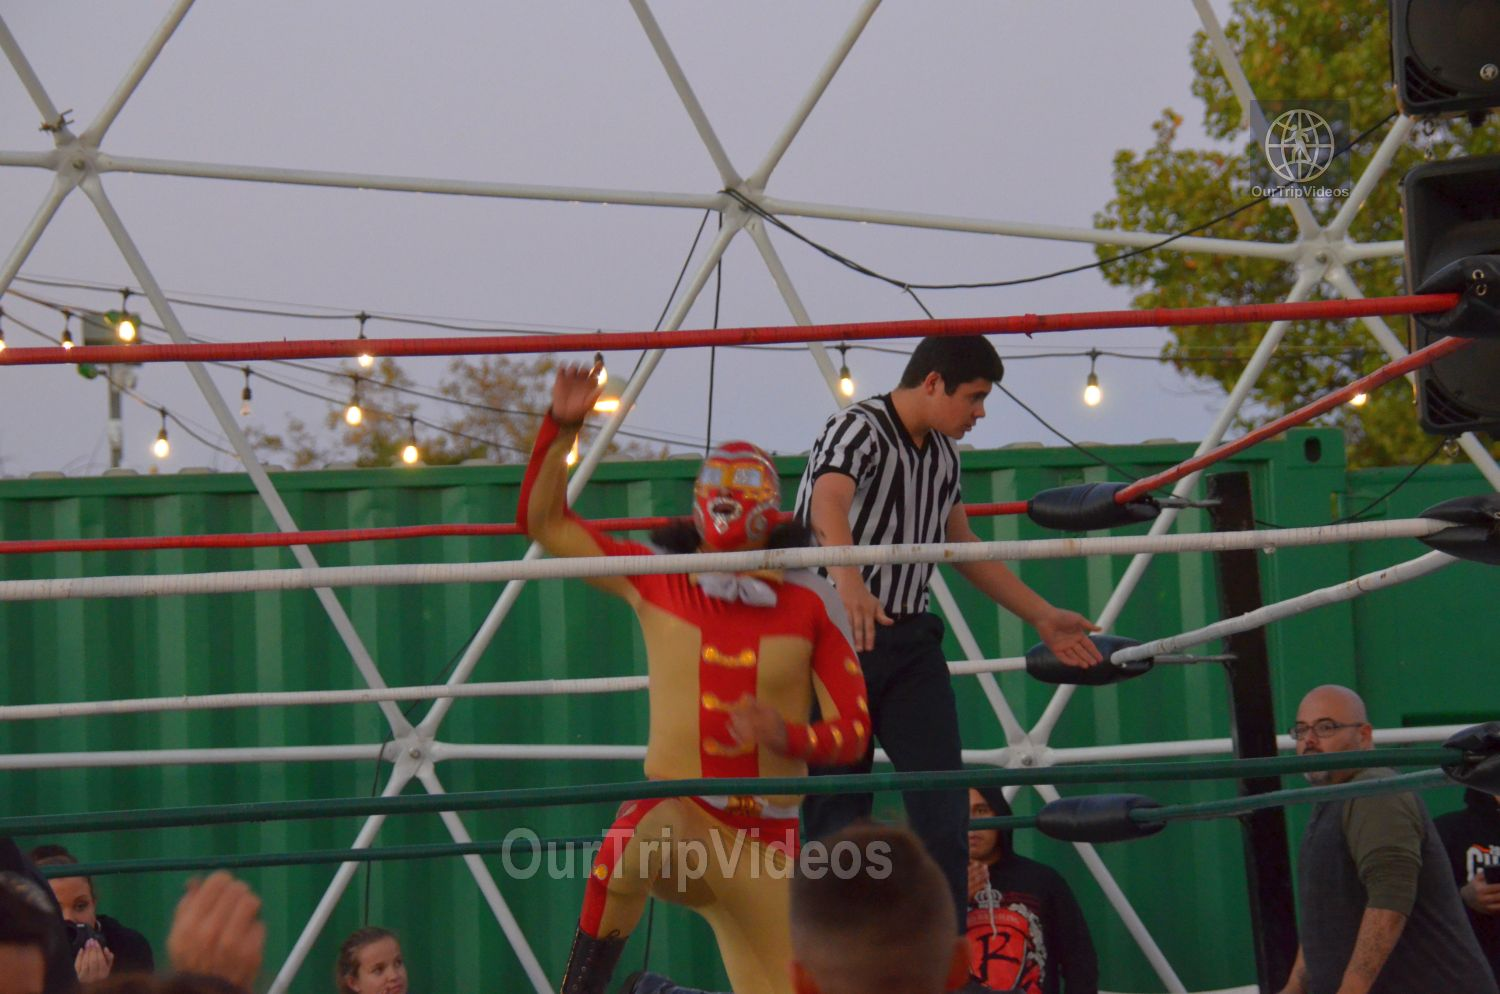 Throwdown at the Thunderdome (Luchador Wrestling), Fremont, CA, USA - Picture 17 of 25